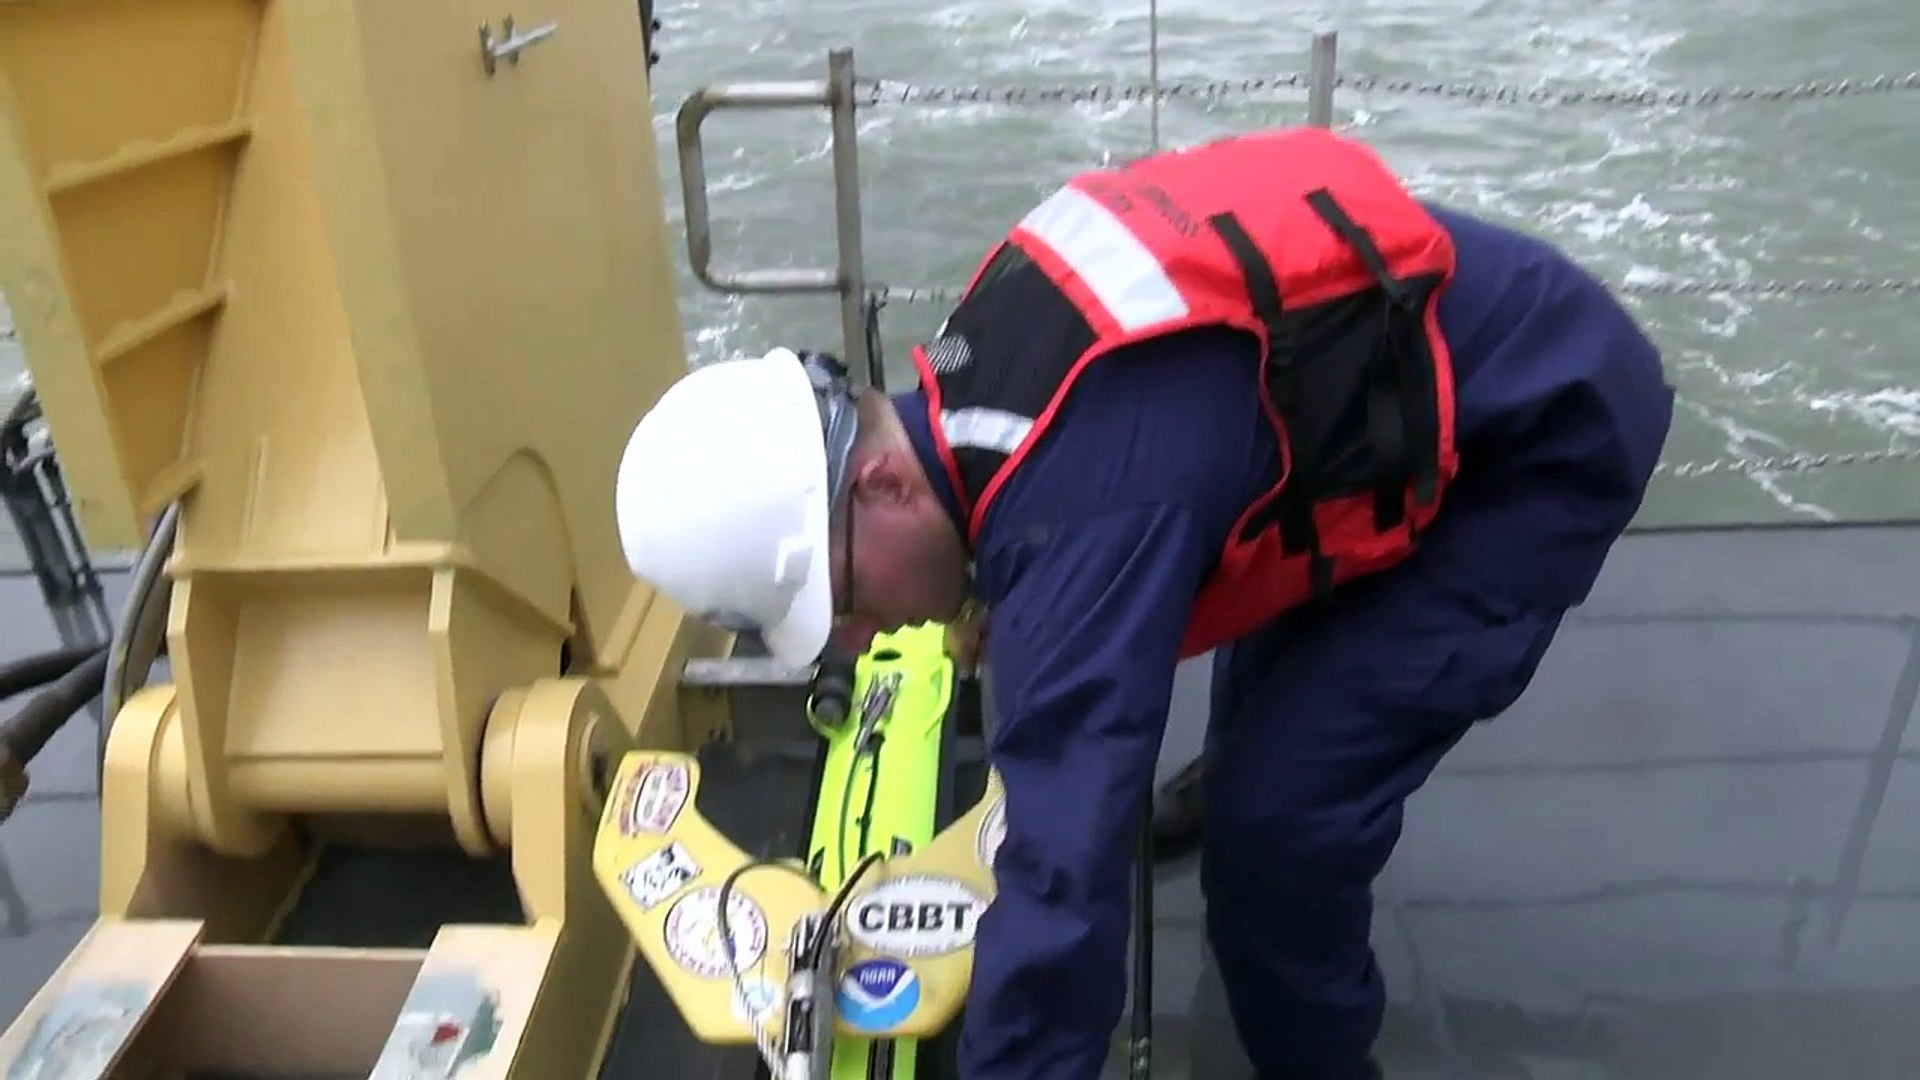 NOAA ship uses latest technology to map the ocean floor